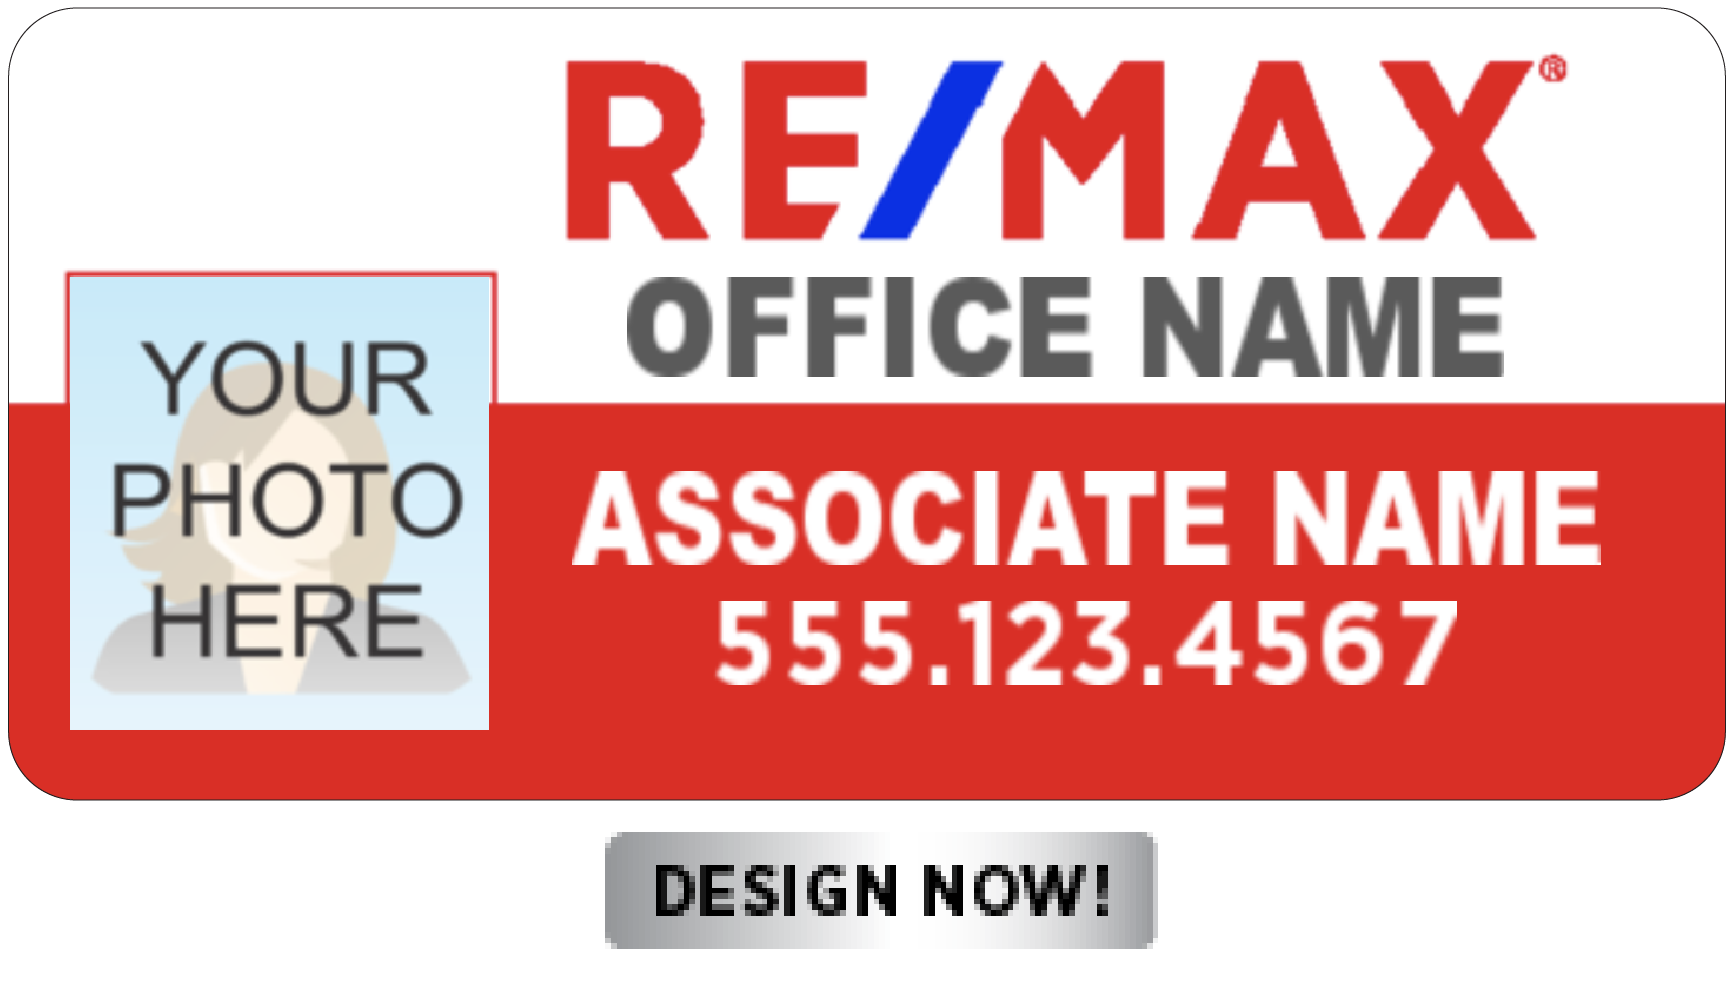 remax11x24magnetredwhitewithpicrevisedthumbnails.png